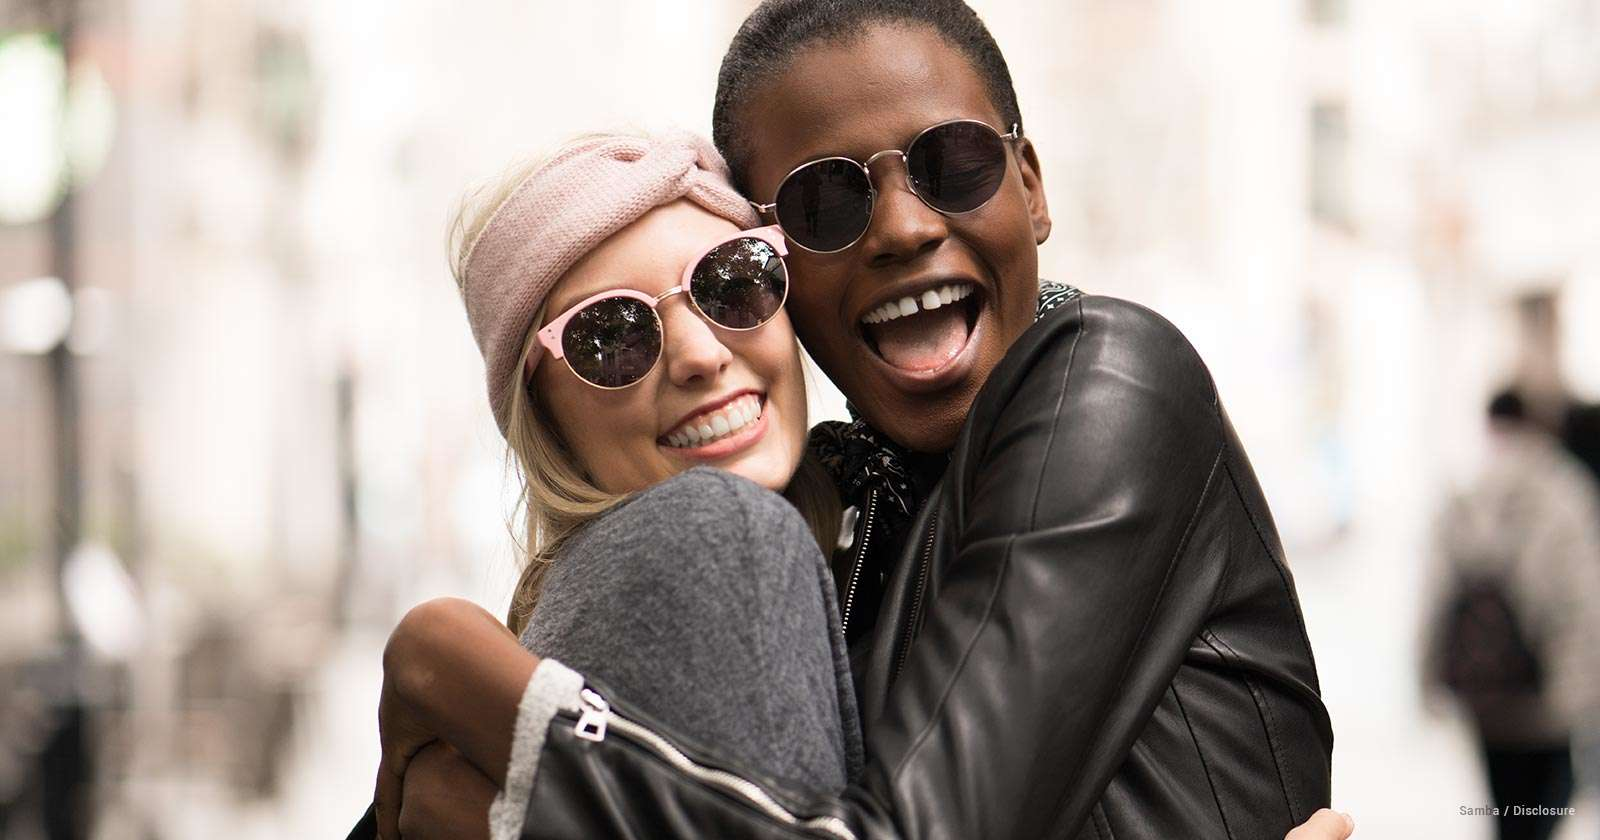 two girls - sunglasses - hug - styles of sunglasses